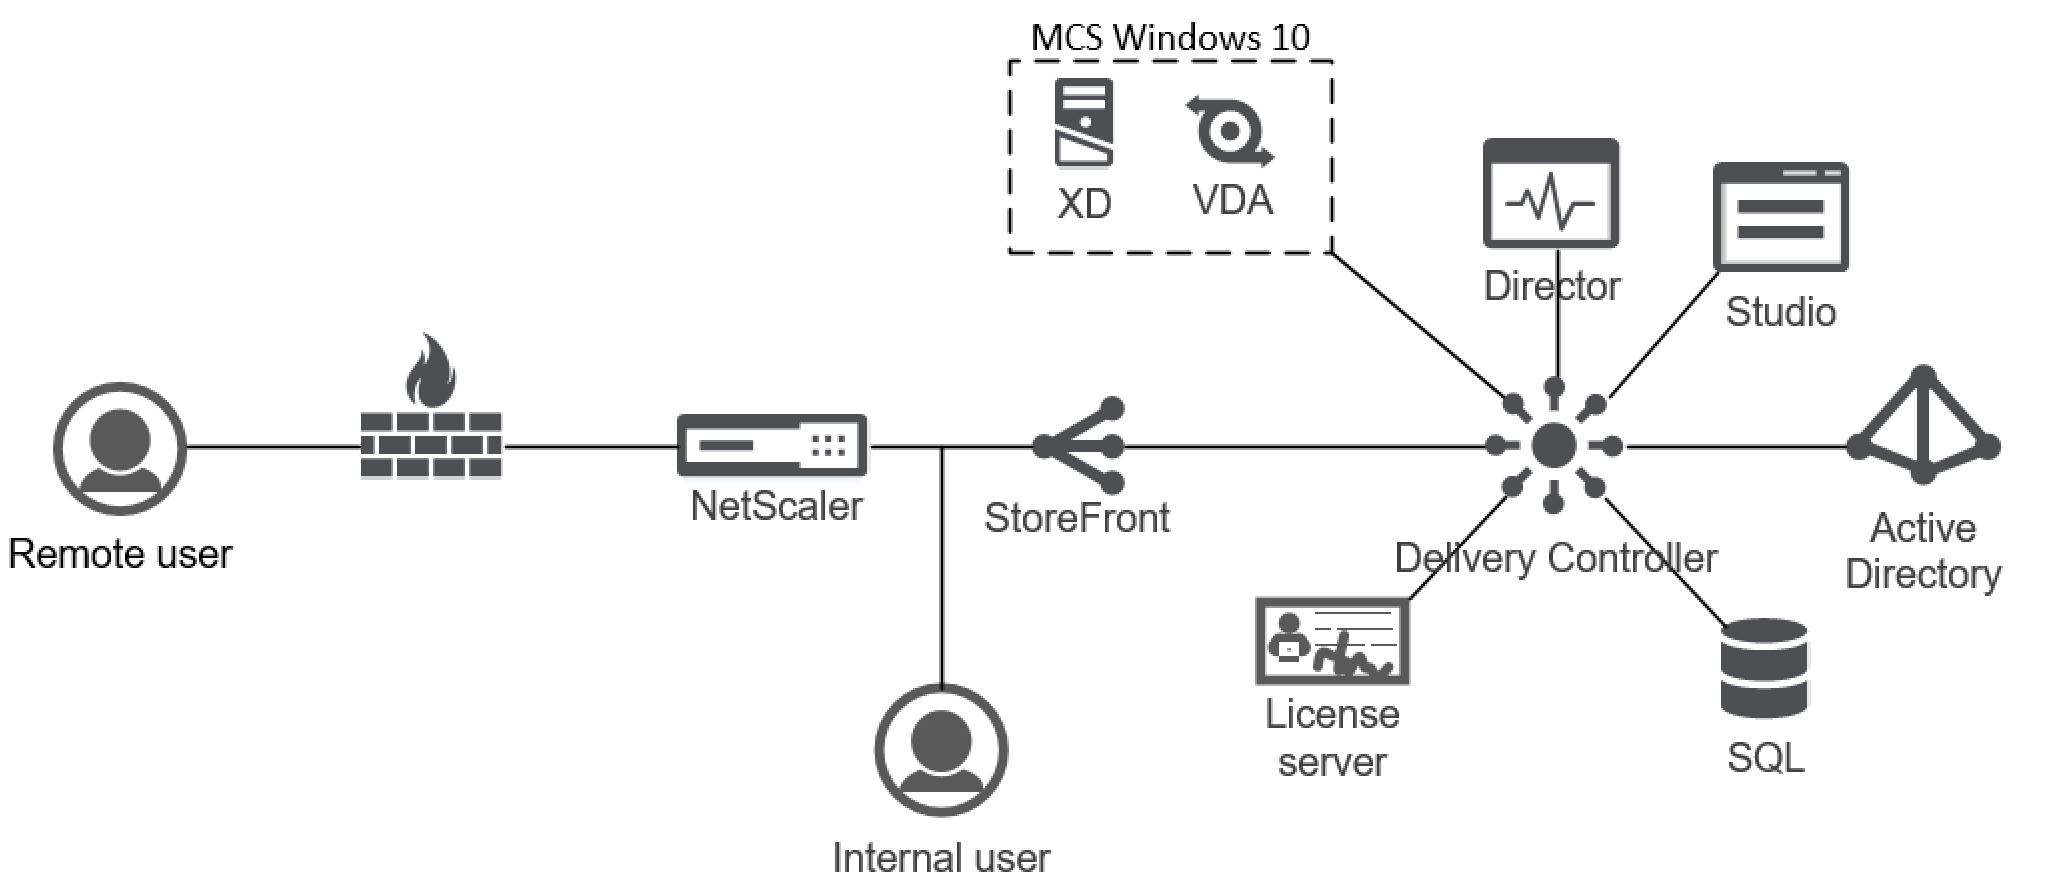 citrix netscaler diagram er for billing system install and configure storefront 3 9 including the new visio mcs 7 13 incl sf